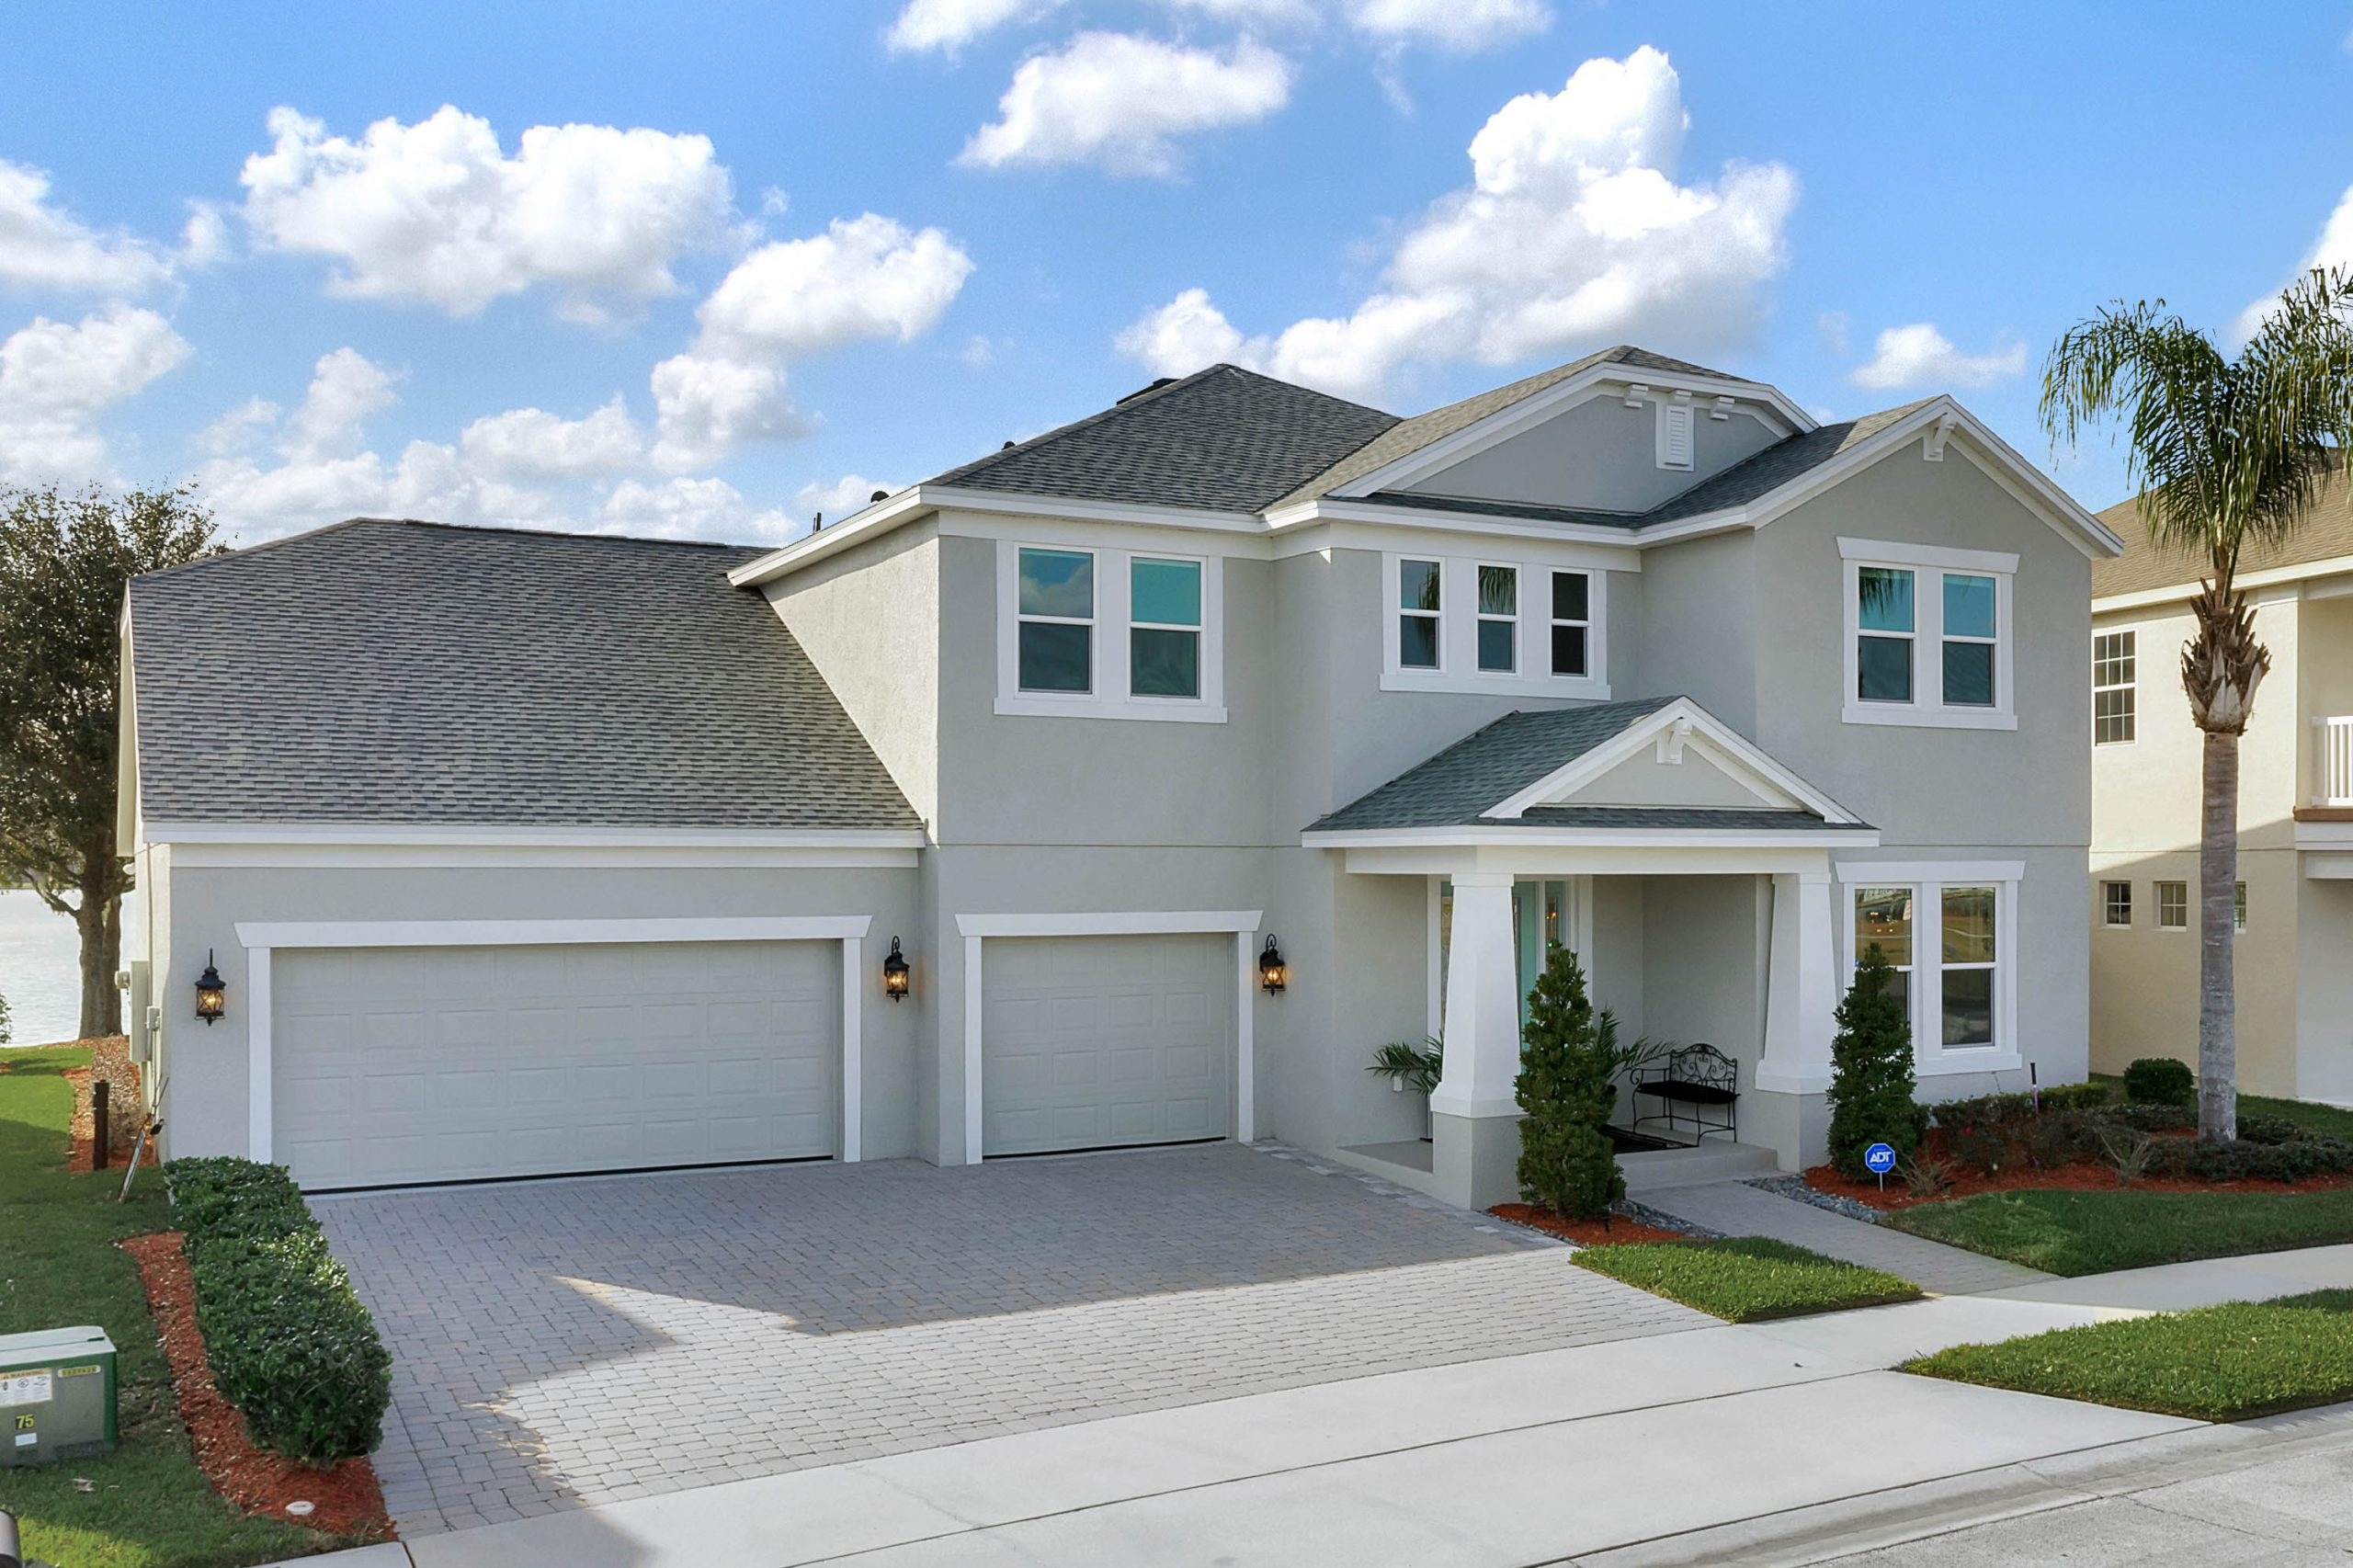 5 Bedroom Groveland Home You Do Not Want to Miss!